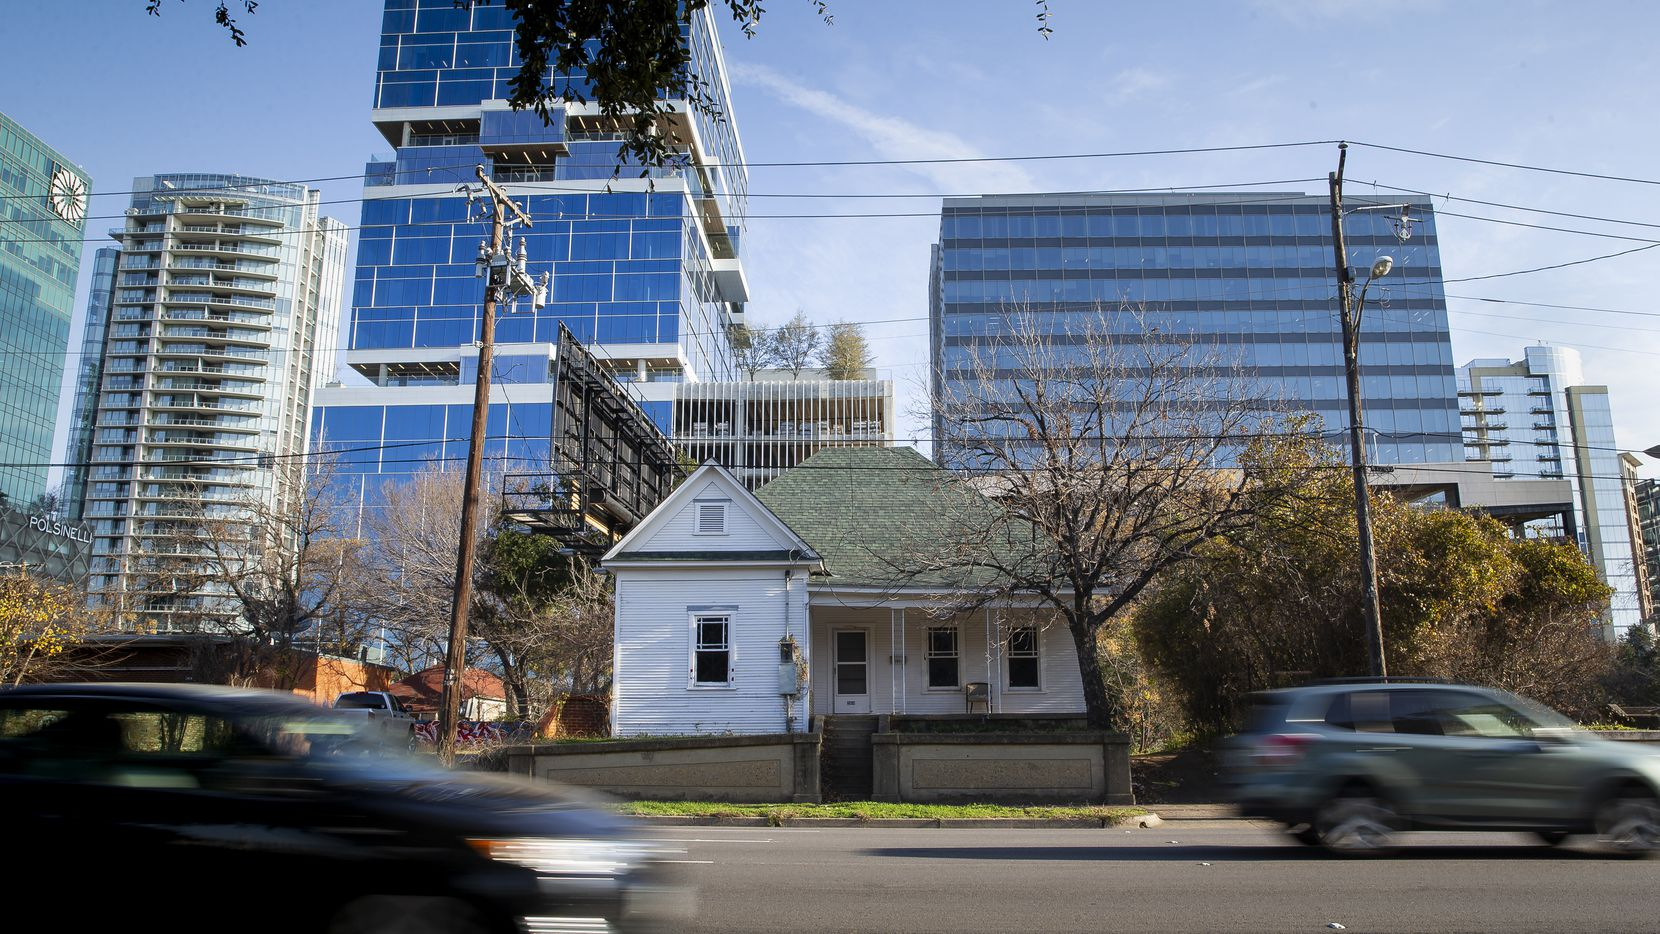 Dallas City Hall has received a demolition application for 2814 Harry Hines Blvd., one of the last residences still standing in Little Mexico.